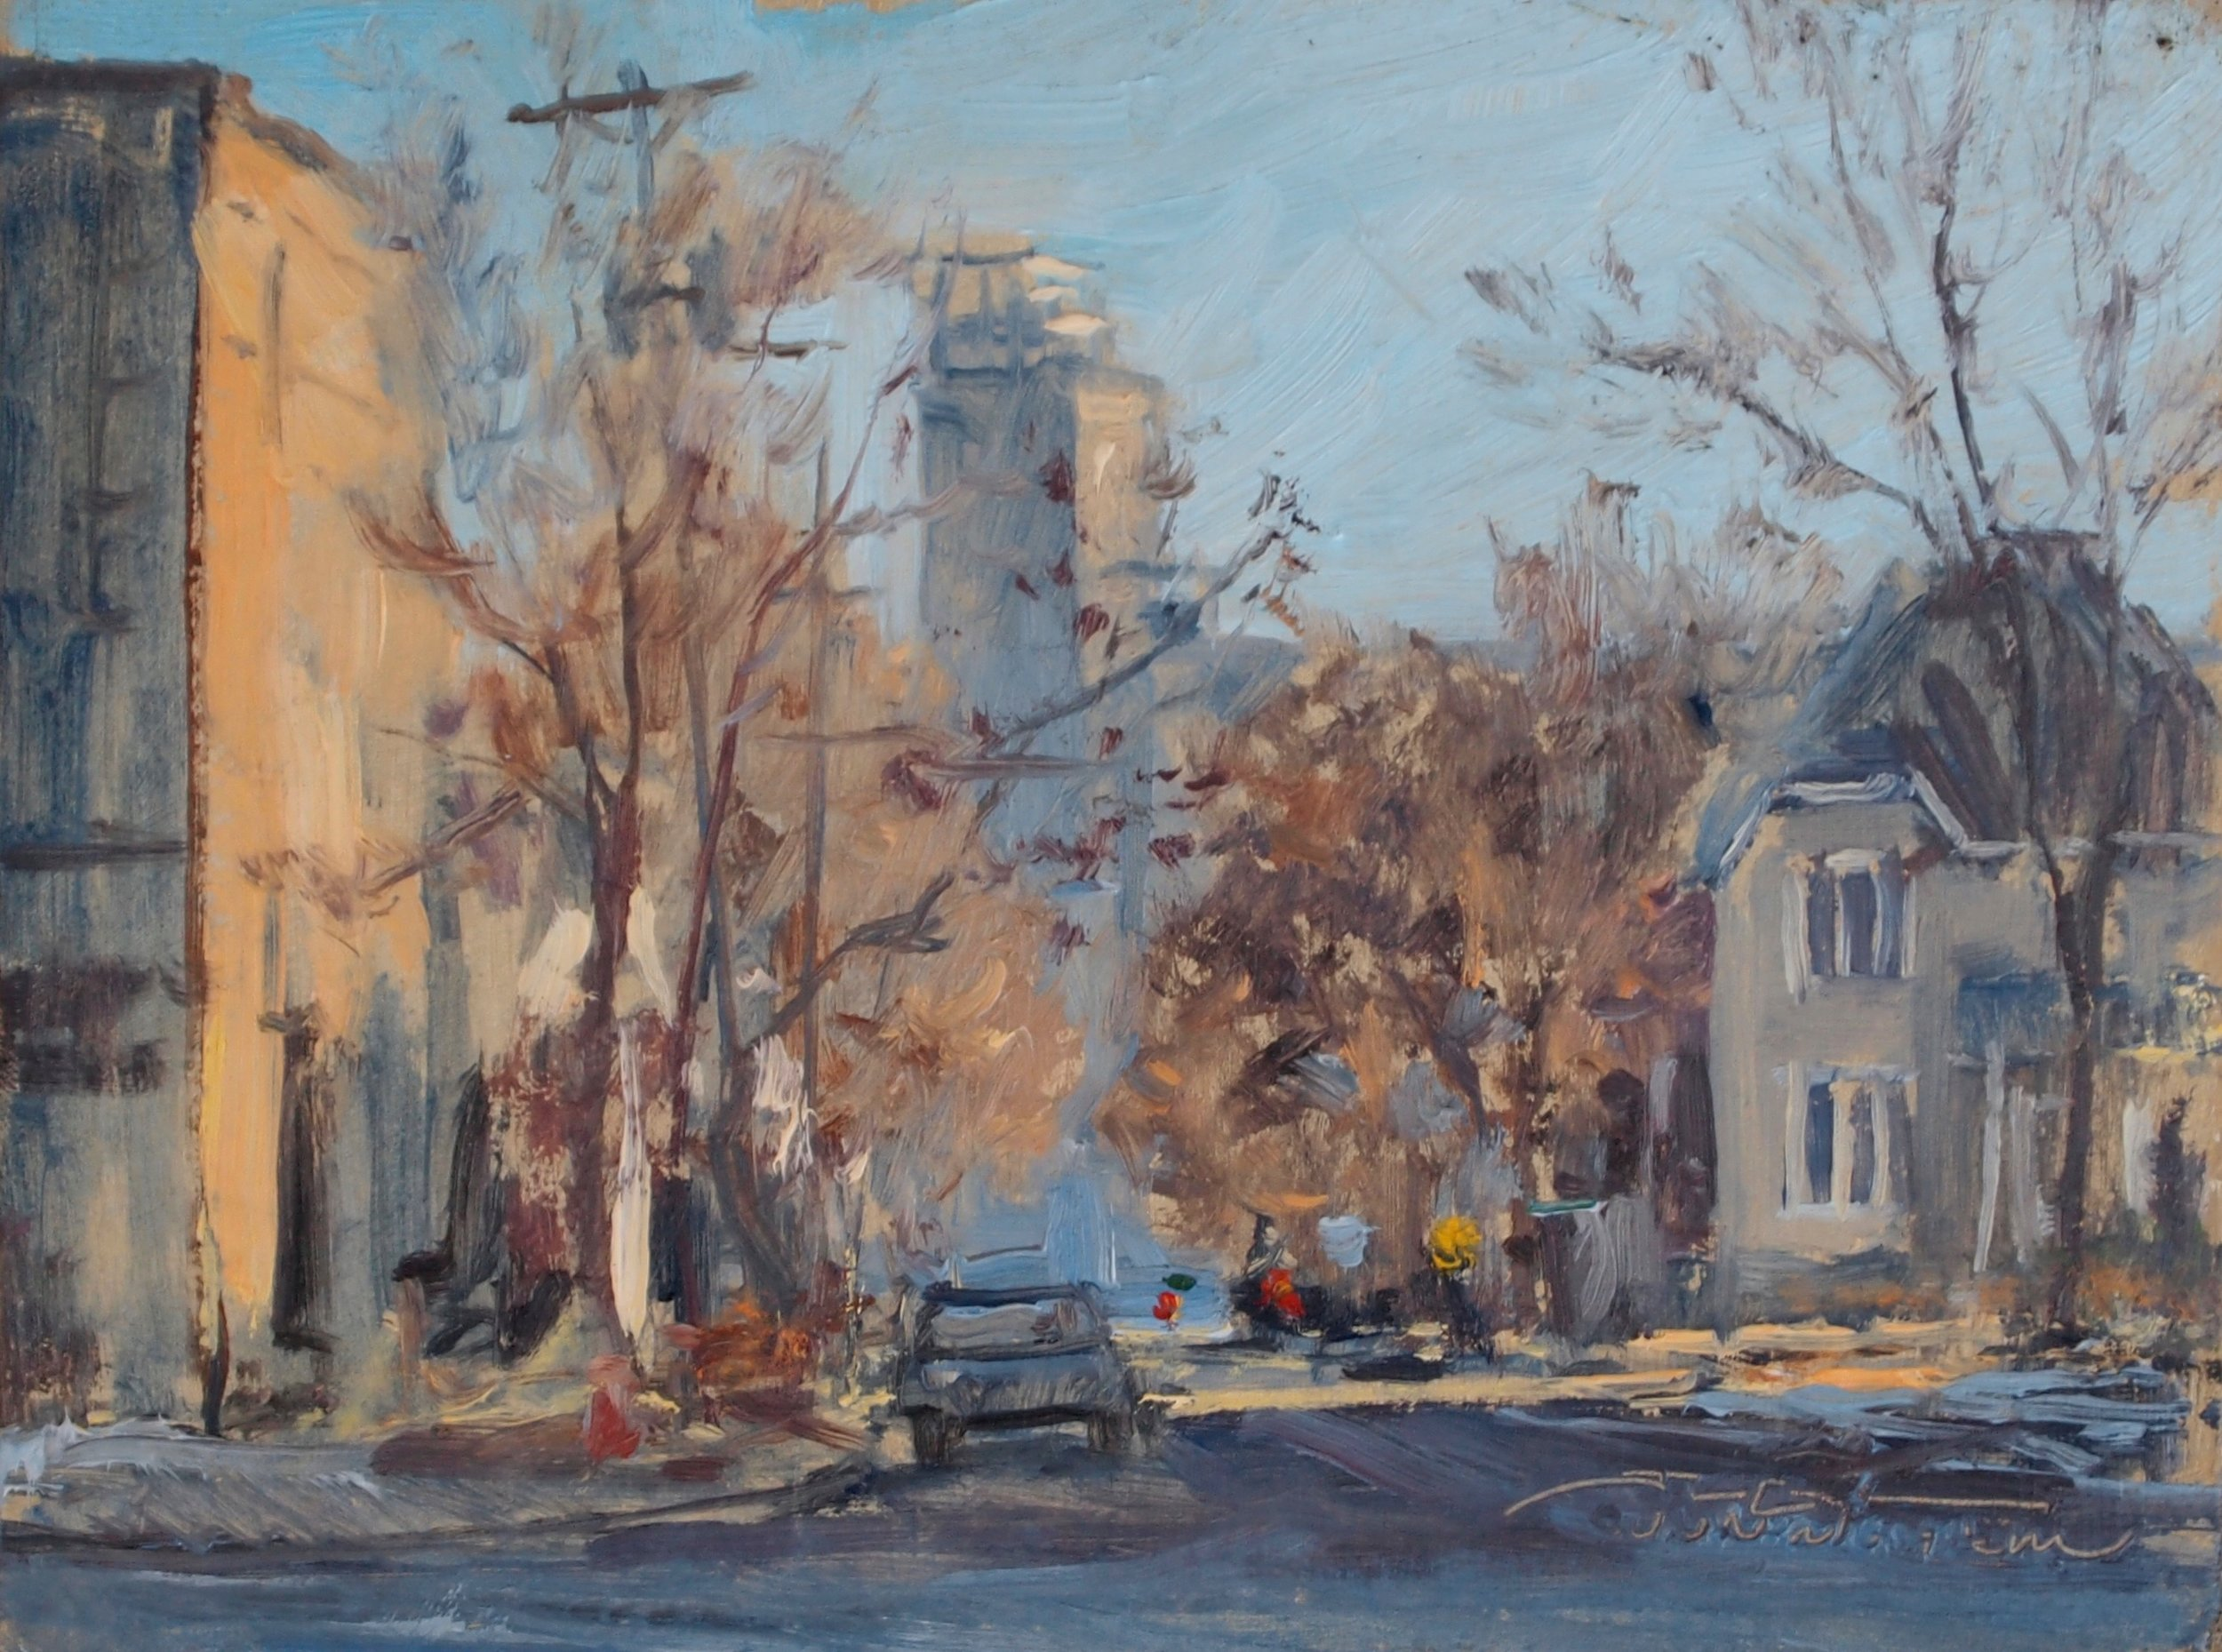 """Waking Watson Avenue""  6""x8"", Oil on Linen , Private Collection   Media Award Winner   St. Paul Art Crawl, Spring 2012"